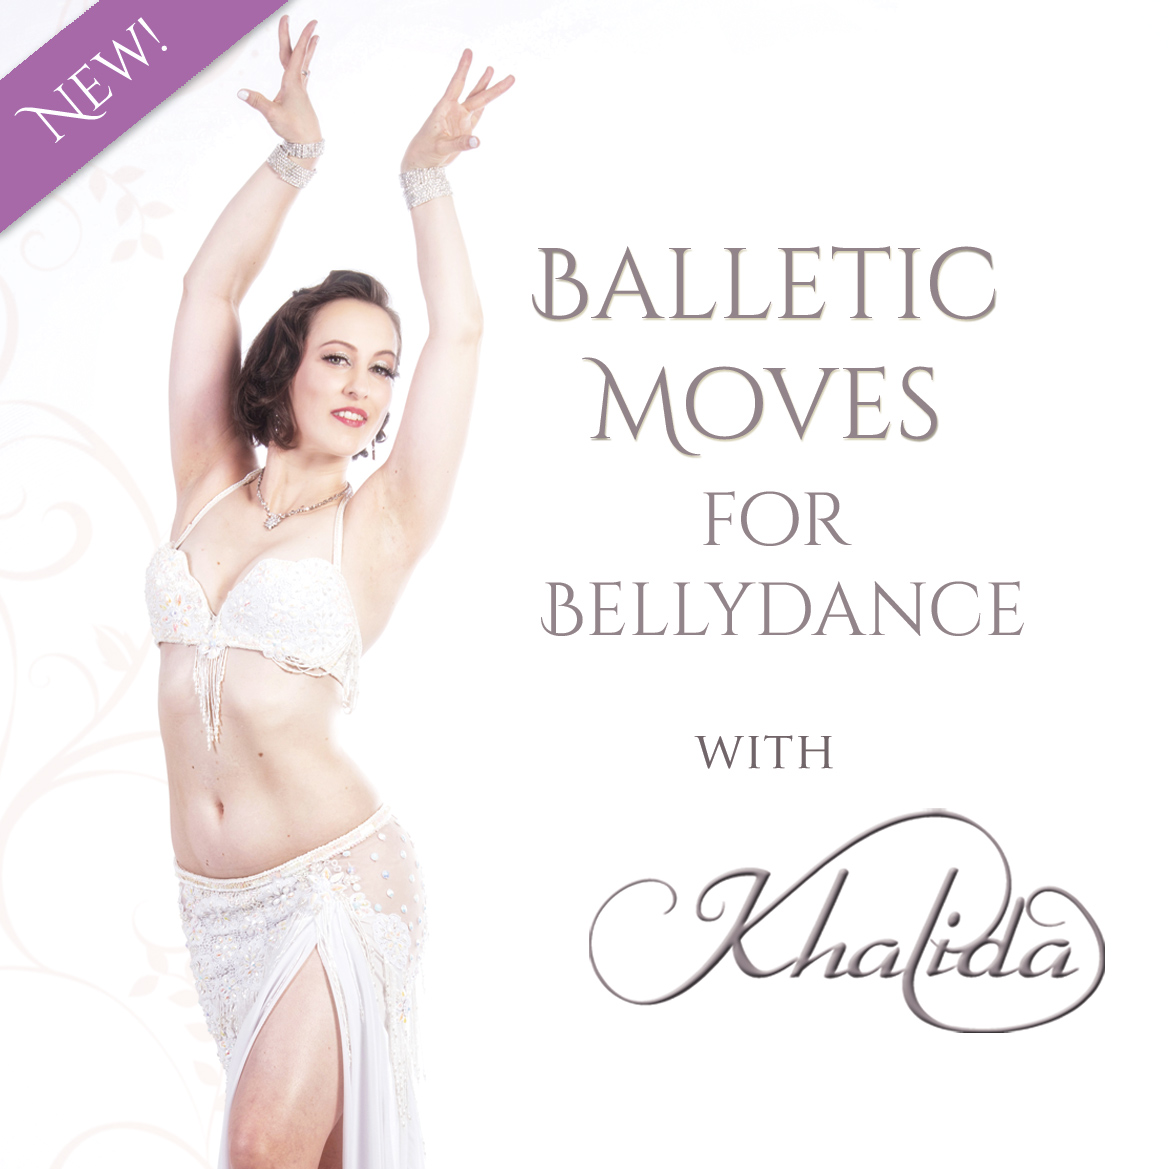 NEW: Balletic Moves for BellyDance